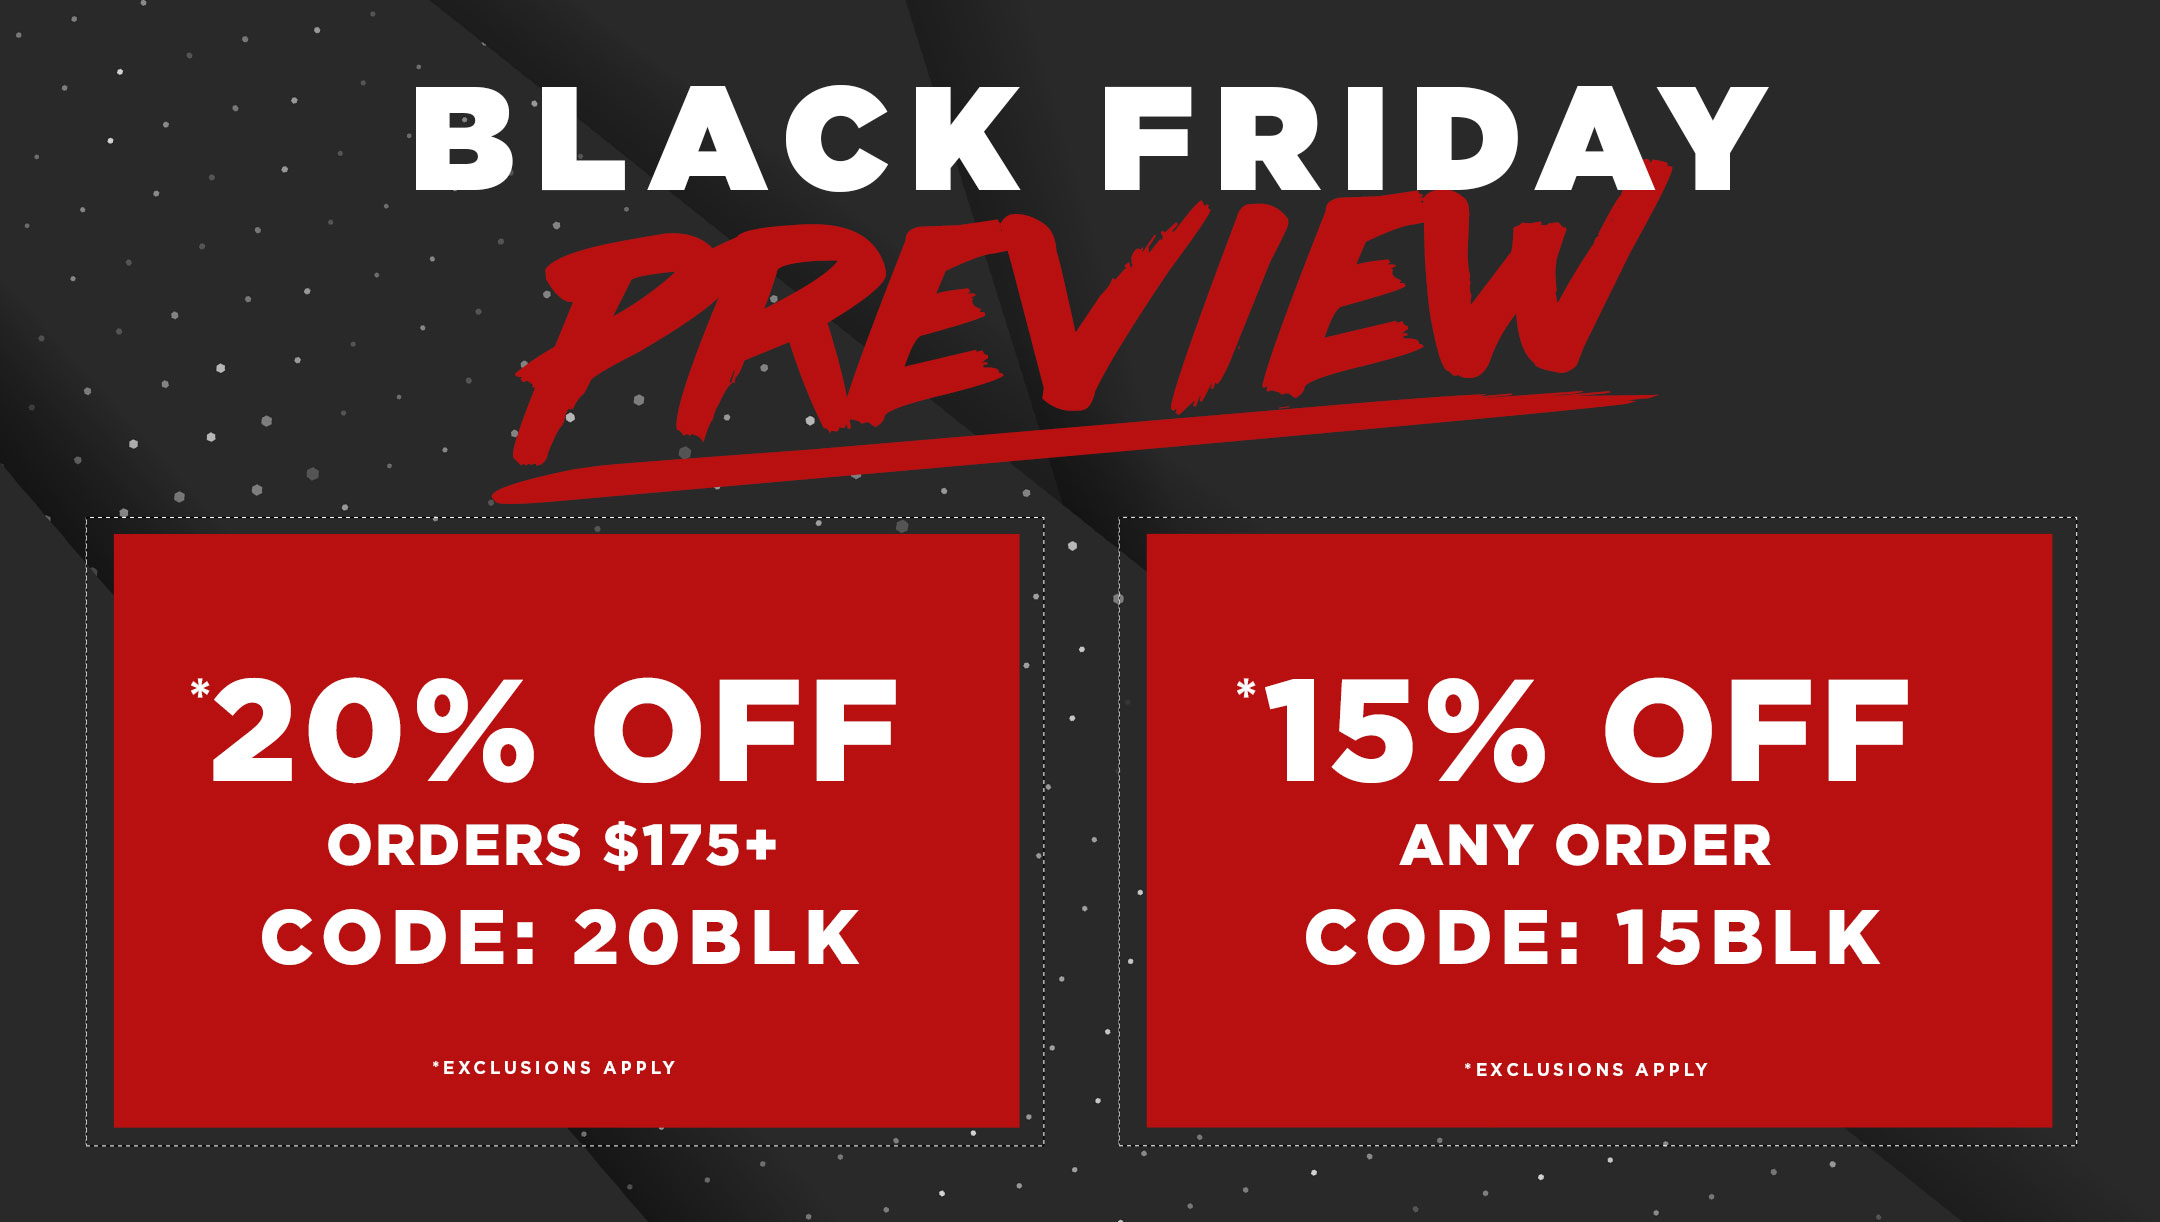 Black Friday Preview - 20% Off Orders $175+ use code 20BLK. 15% Off Any Order use Code 15BLK. Exclusions apply.